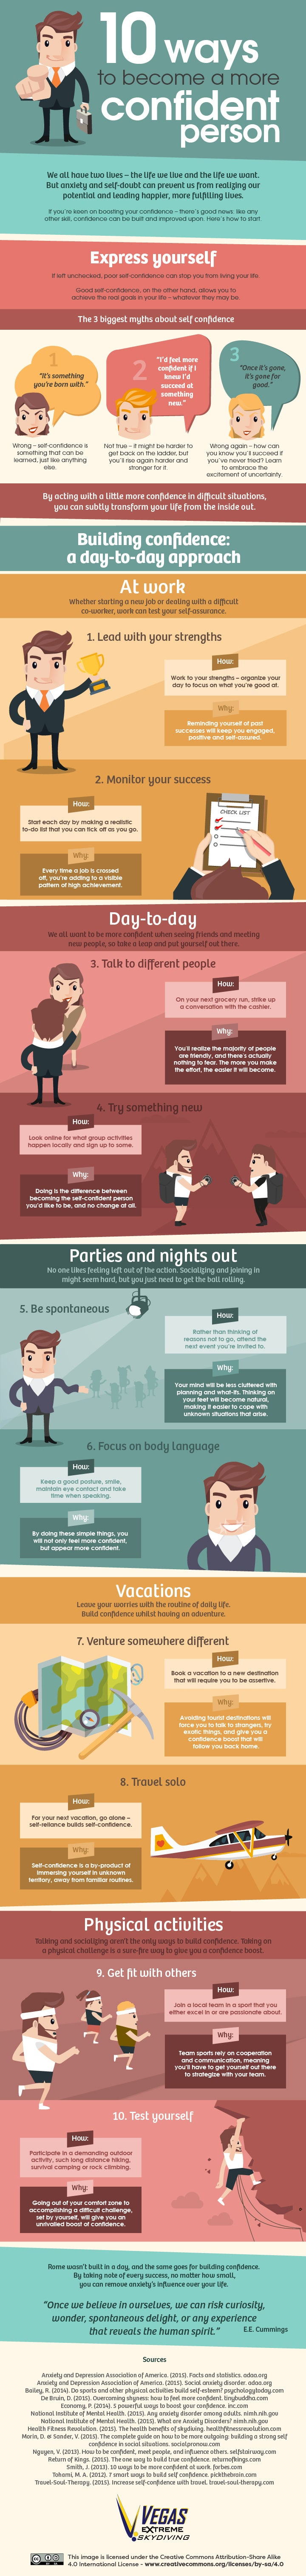 10 Ways to Become a More Confident Person (Infographic)